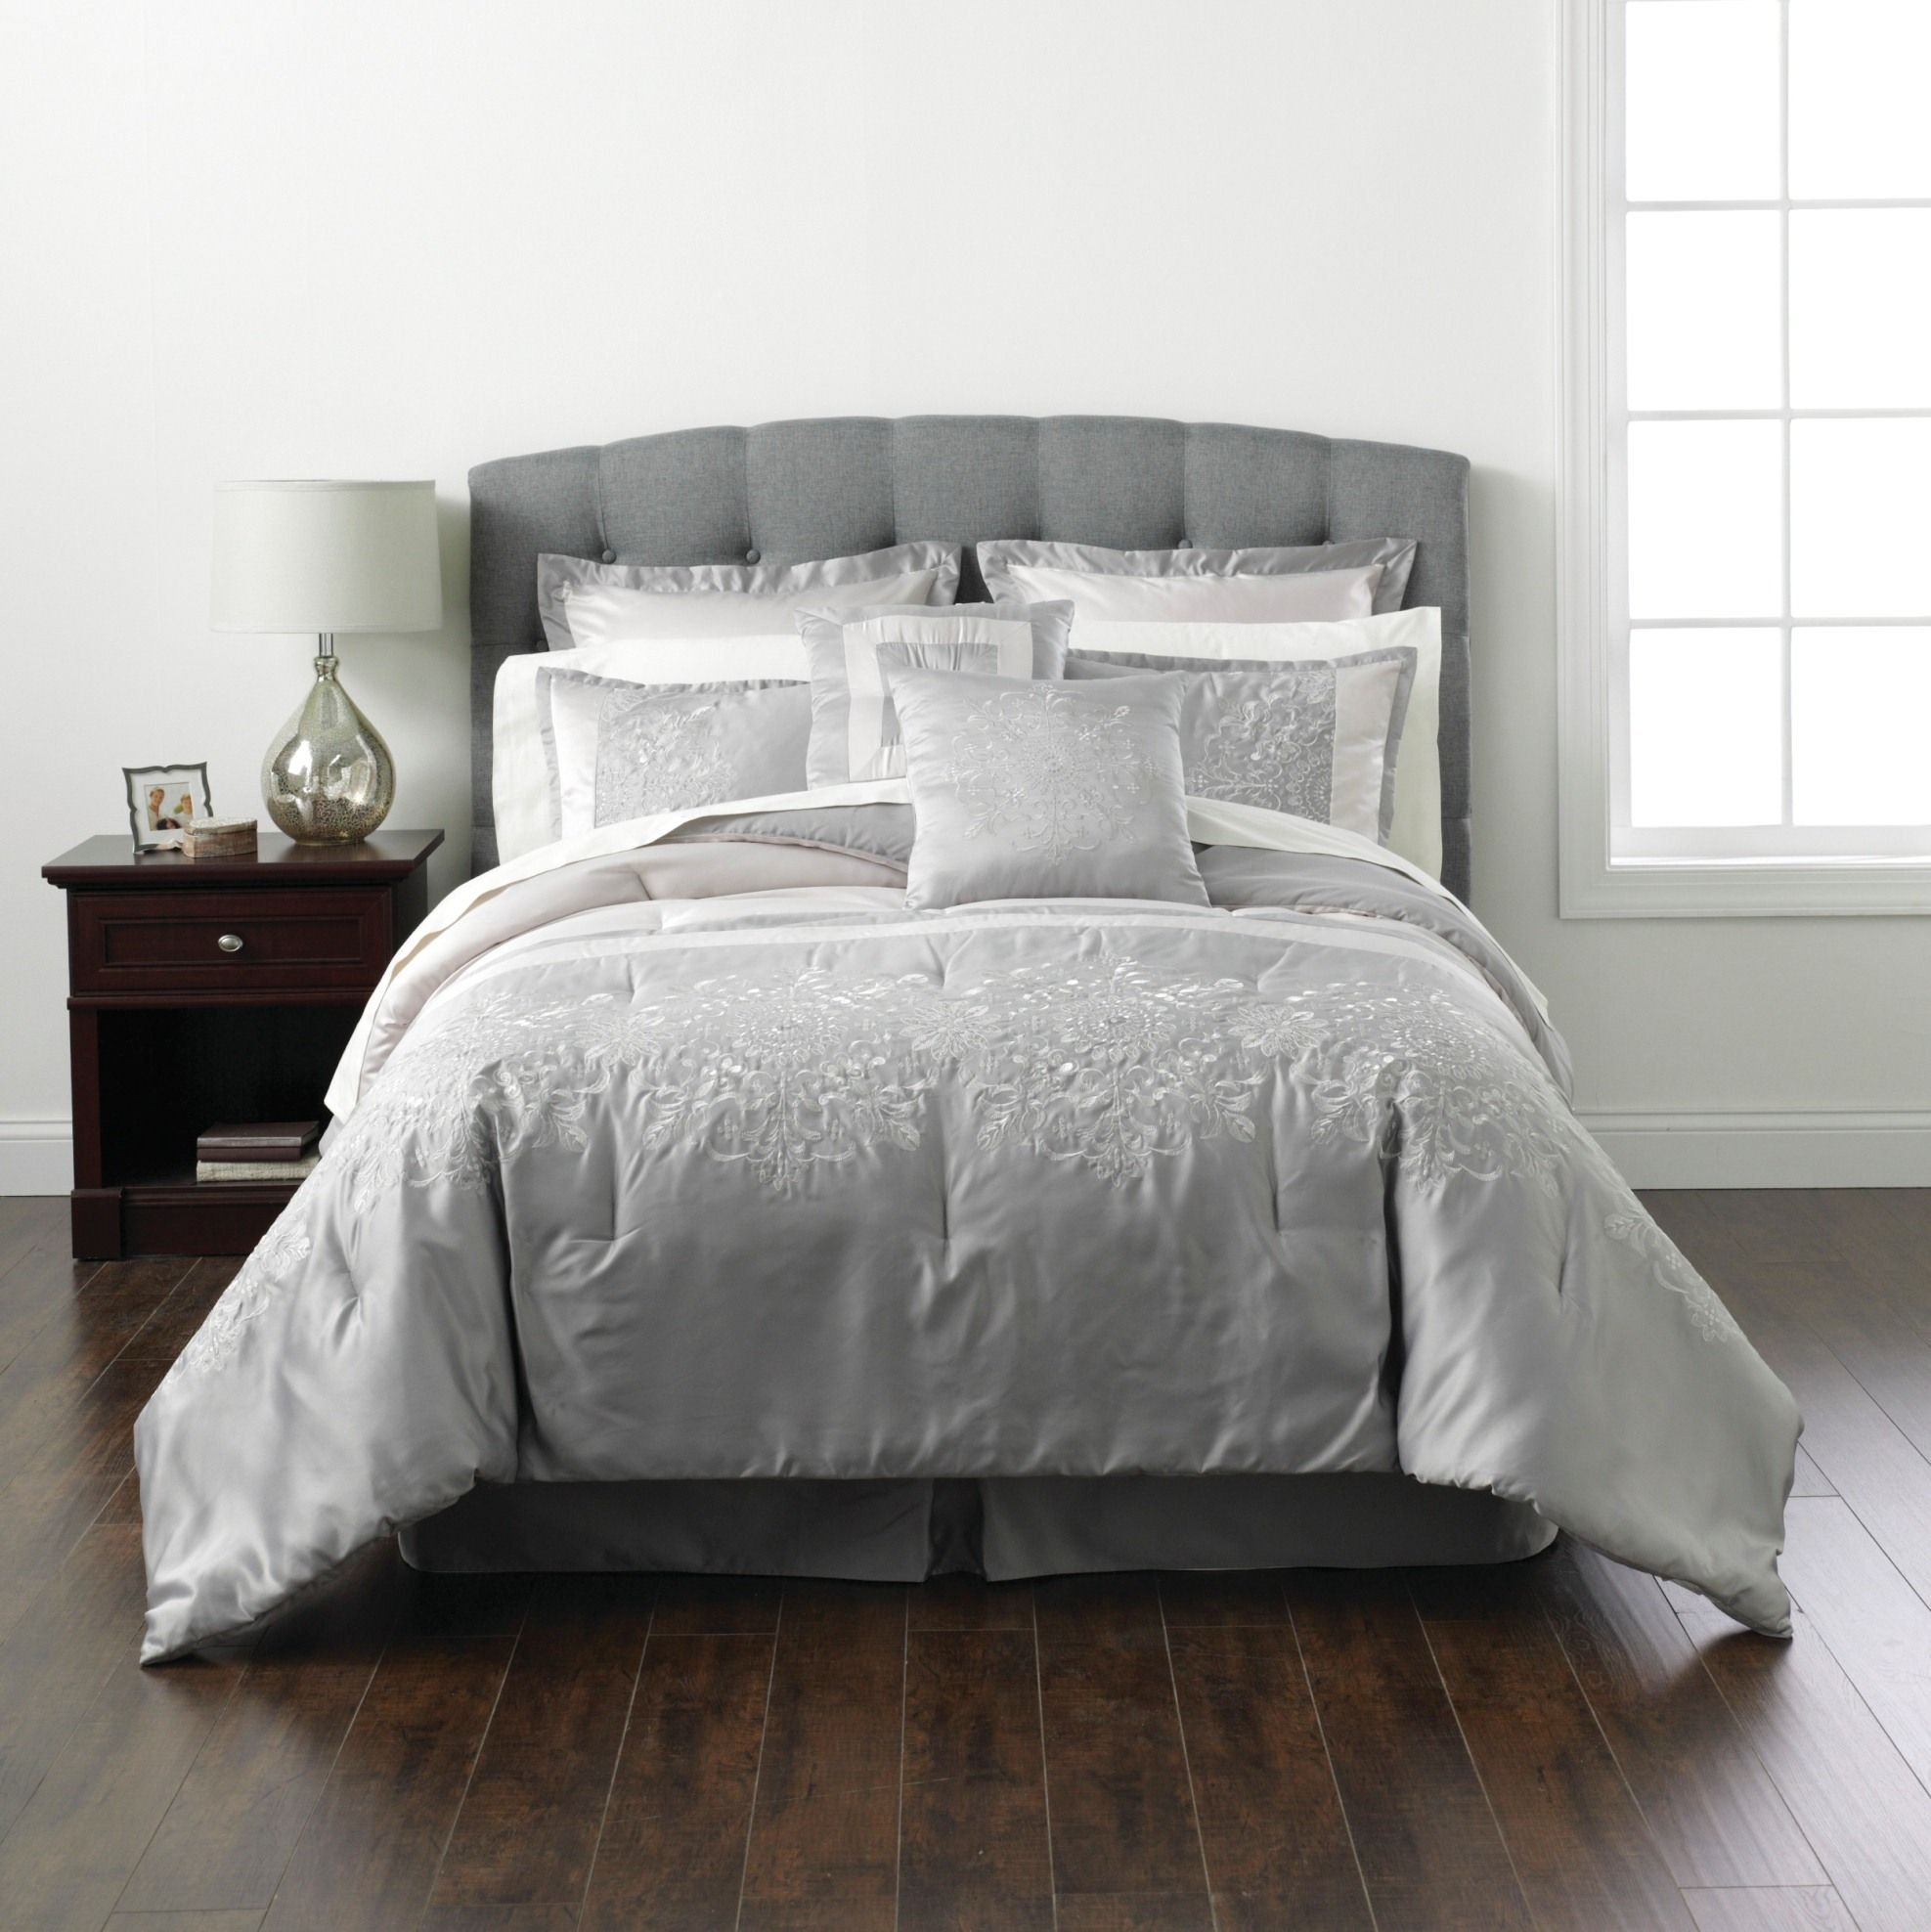 color down alternative overstock solid shipping product bath over microfiber comforter orders free on bedding